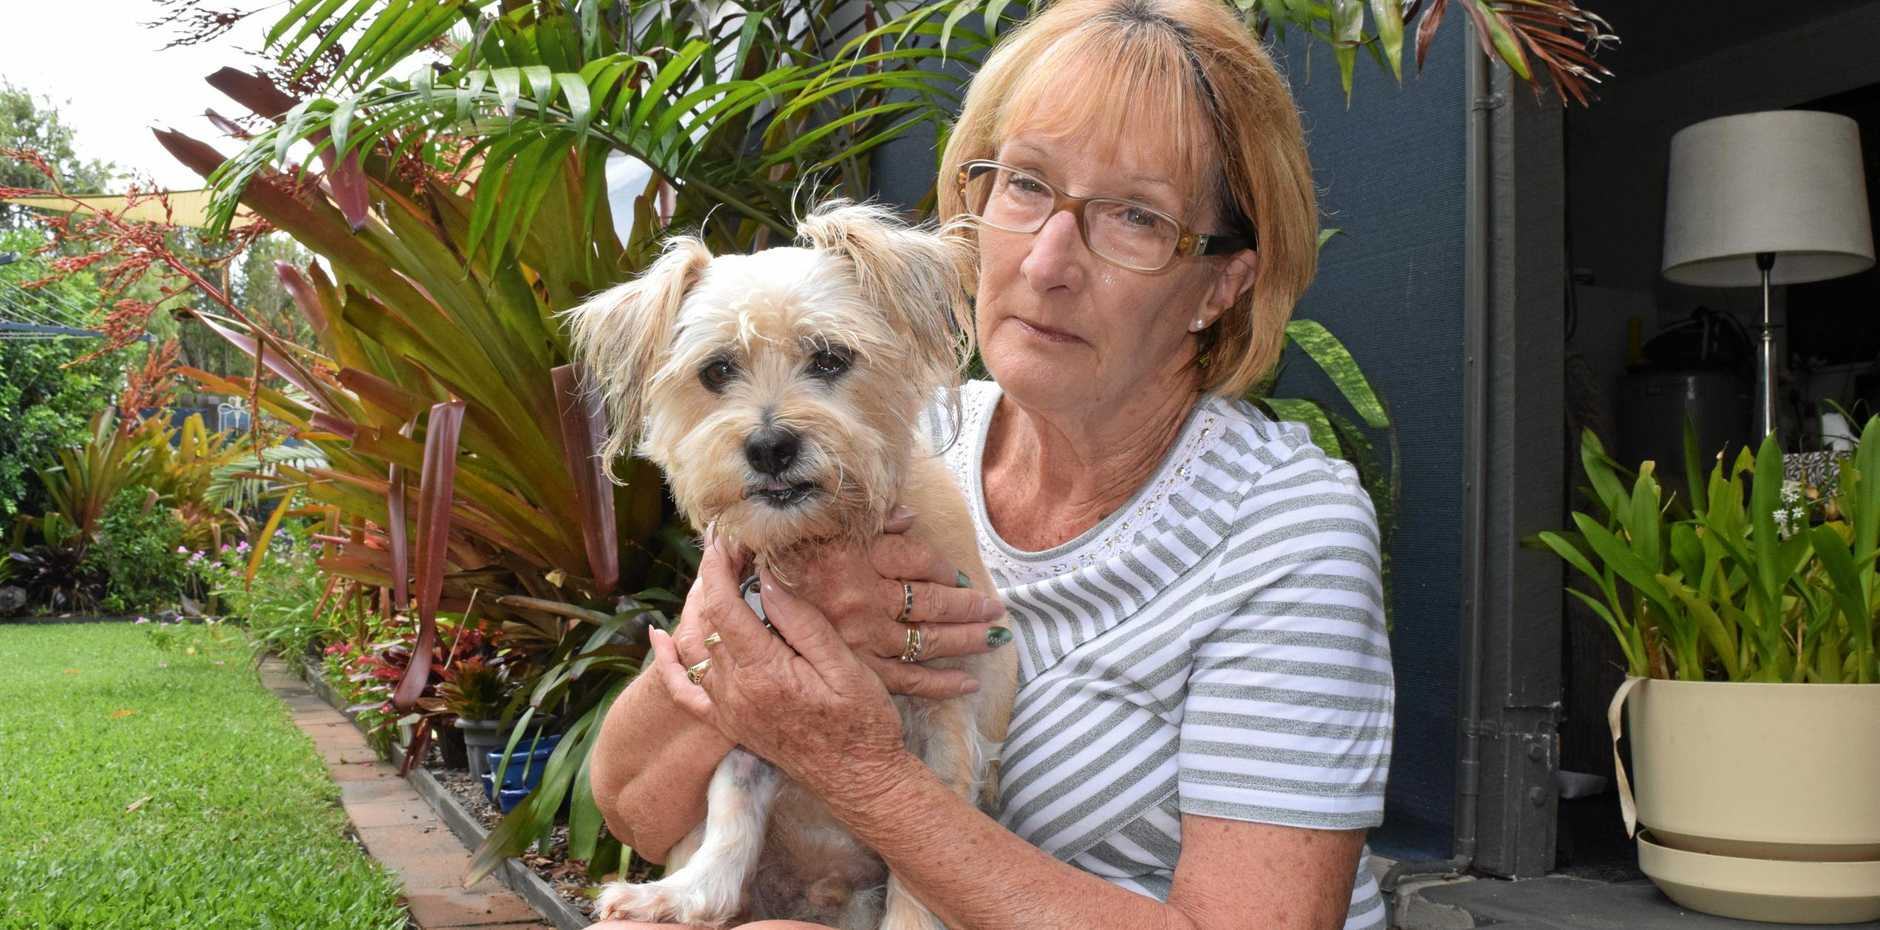 Danny, a silky maltese, was attacked by two large dogs while at an off-leash beach with his owner, Margaret Hodgson. INSET: Danny's injury.